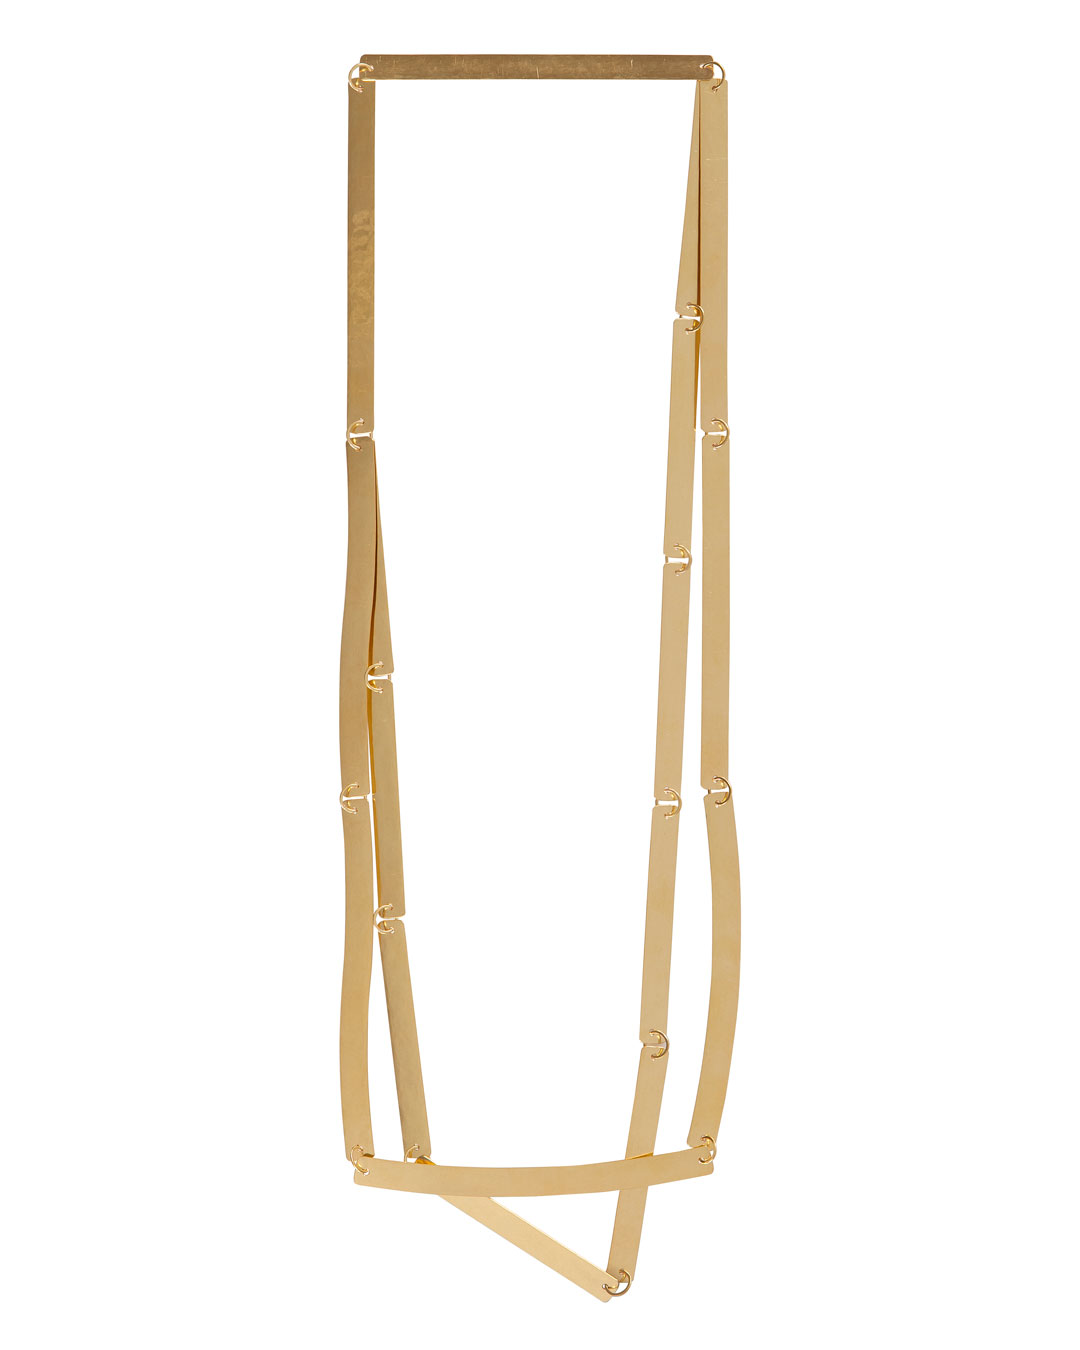 Annelies Planteijdt, Mooie stad – Collier en boek (Beautiful City - Necklace and Book), 2017, necklace; gold, 360 x 240 mm, price on request (image 2/3)